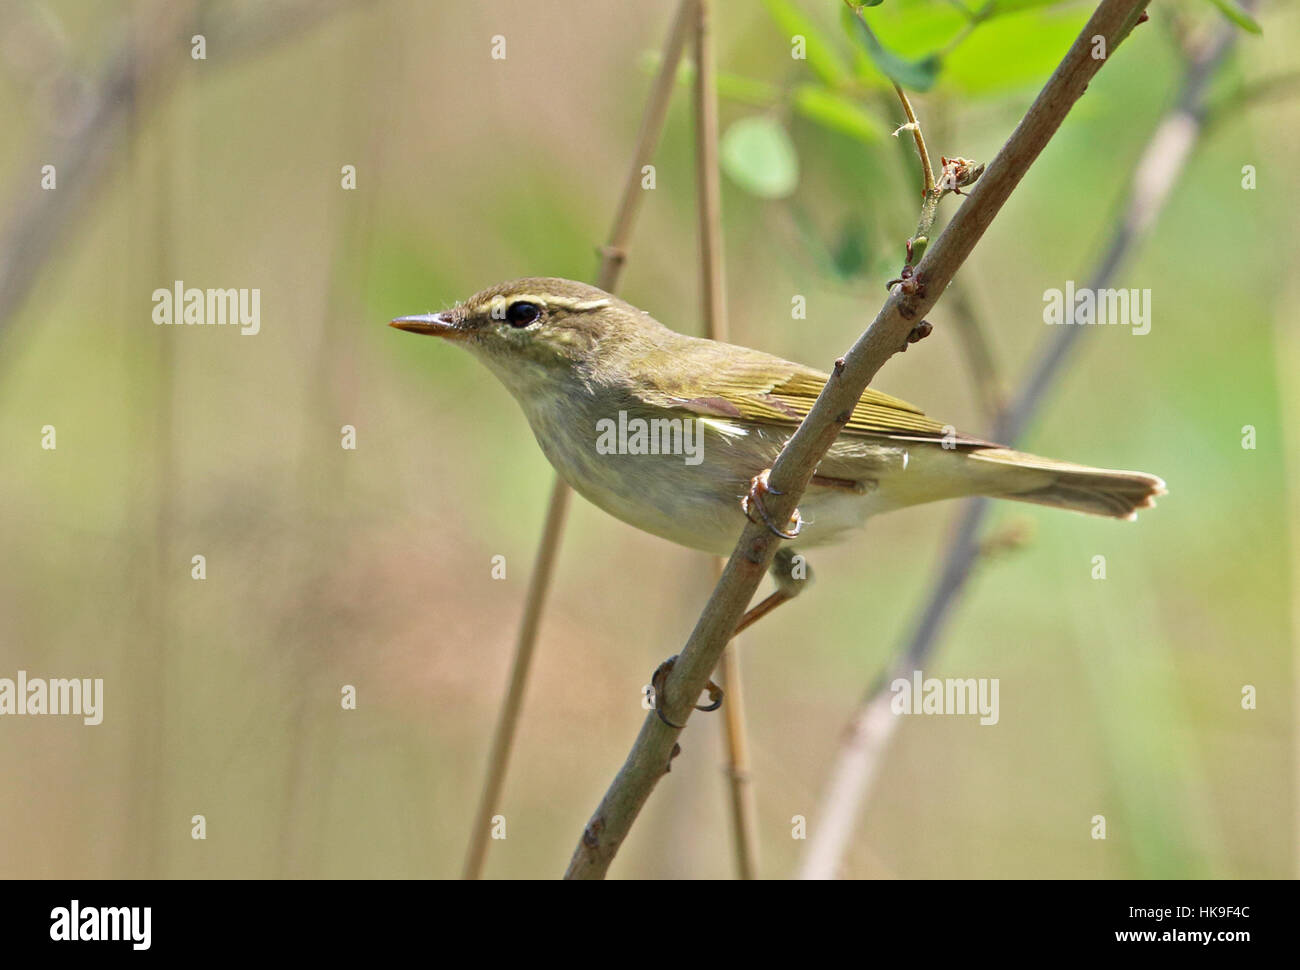 Kamchatka Leaf-Warbler (Phylloscopus examinandus) adult perched on branch  Hebei, China       May 2016 Stock Photo